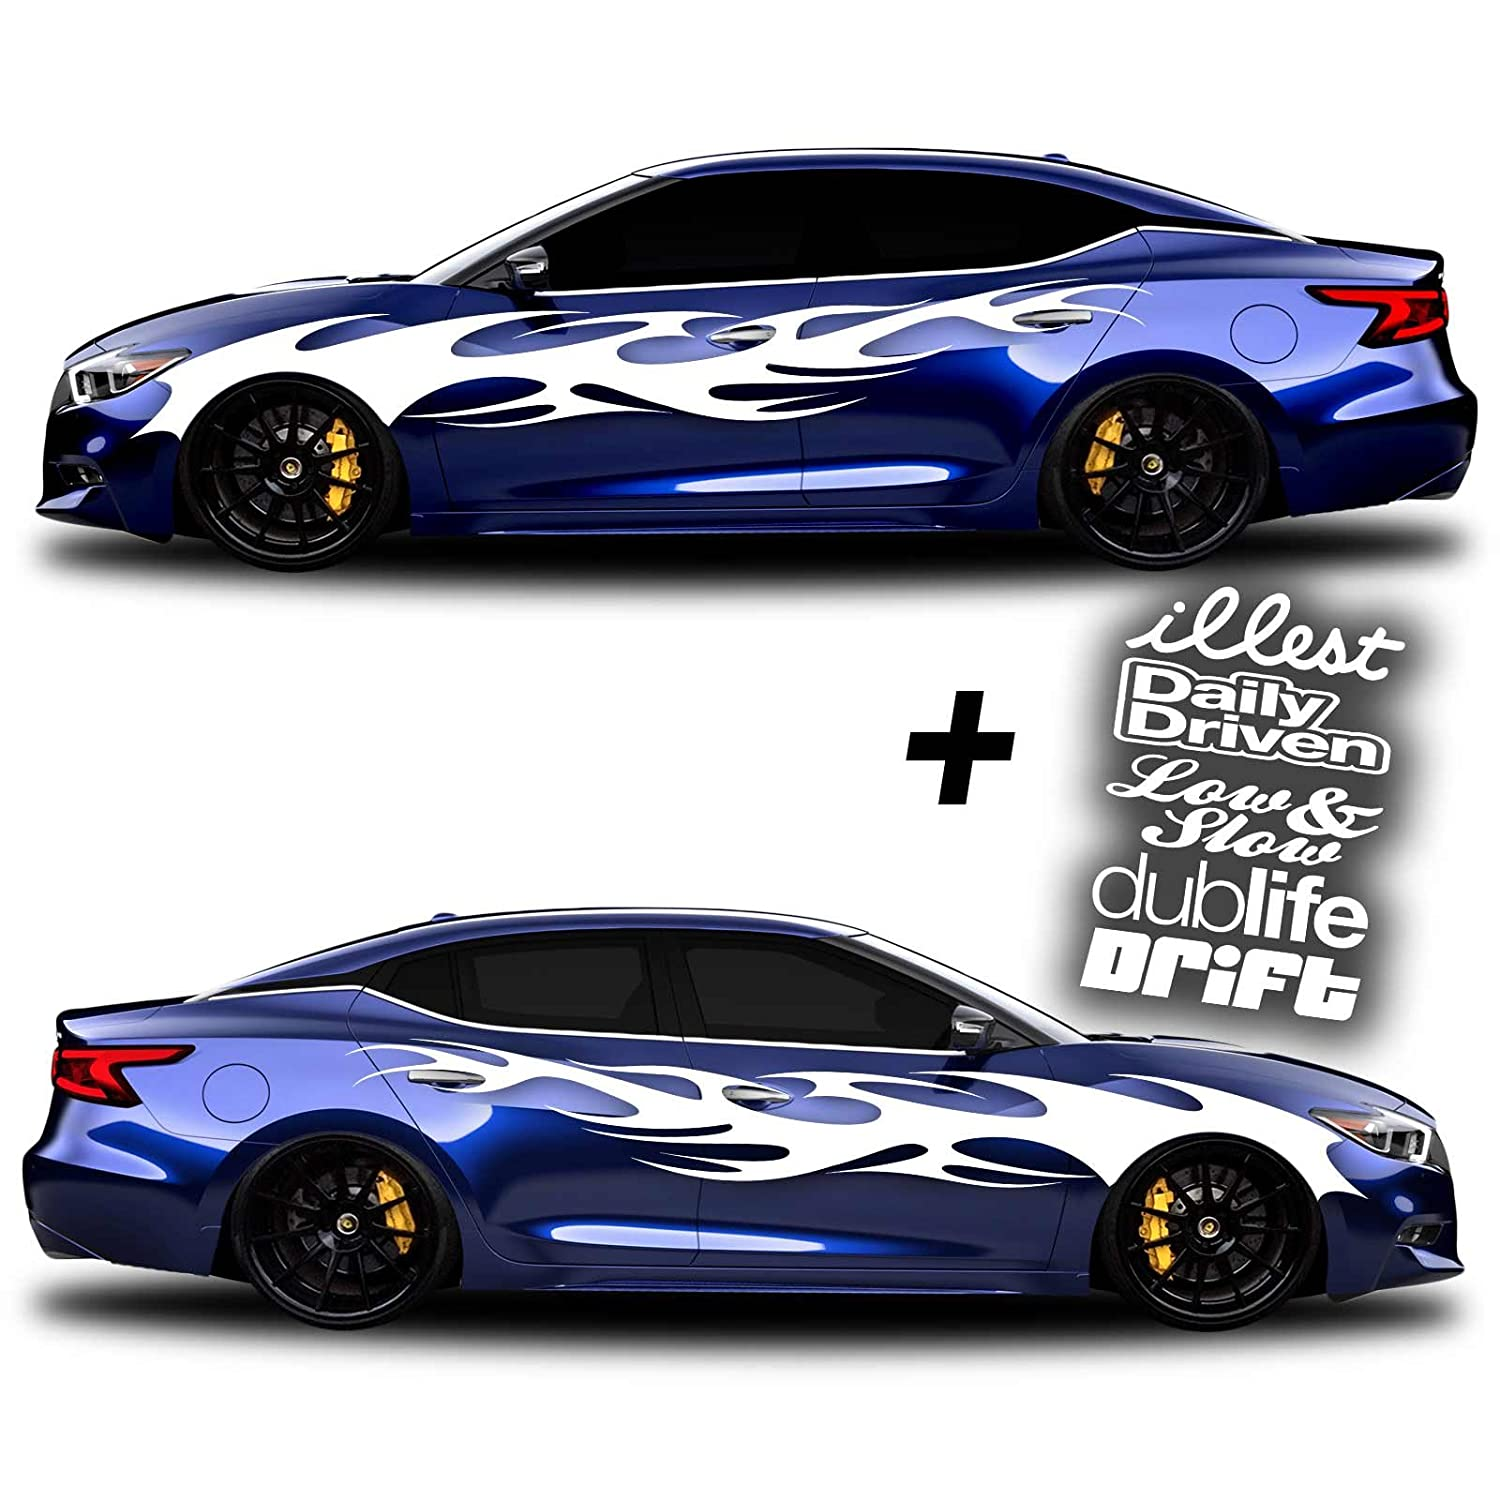 Sg motiv vinyl body side graphics racing stripes car truck sticker decal universal 002 decals illest daily driven low slow dub life drift white